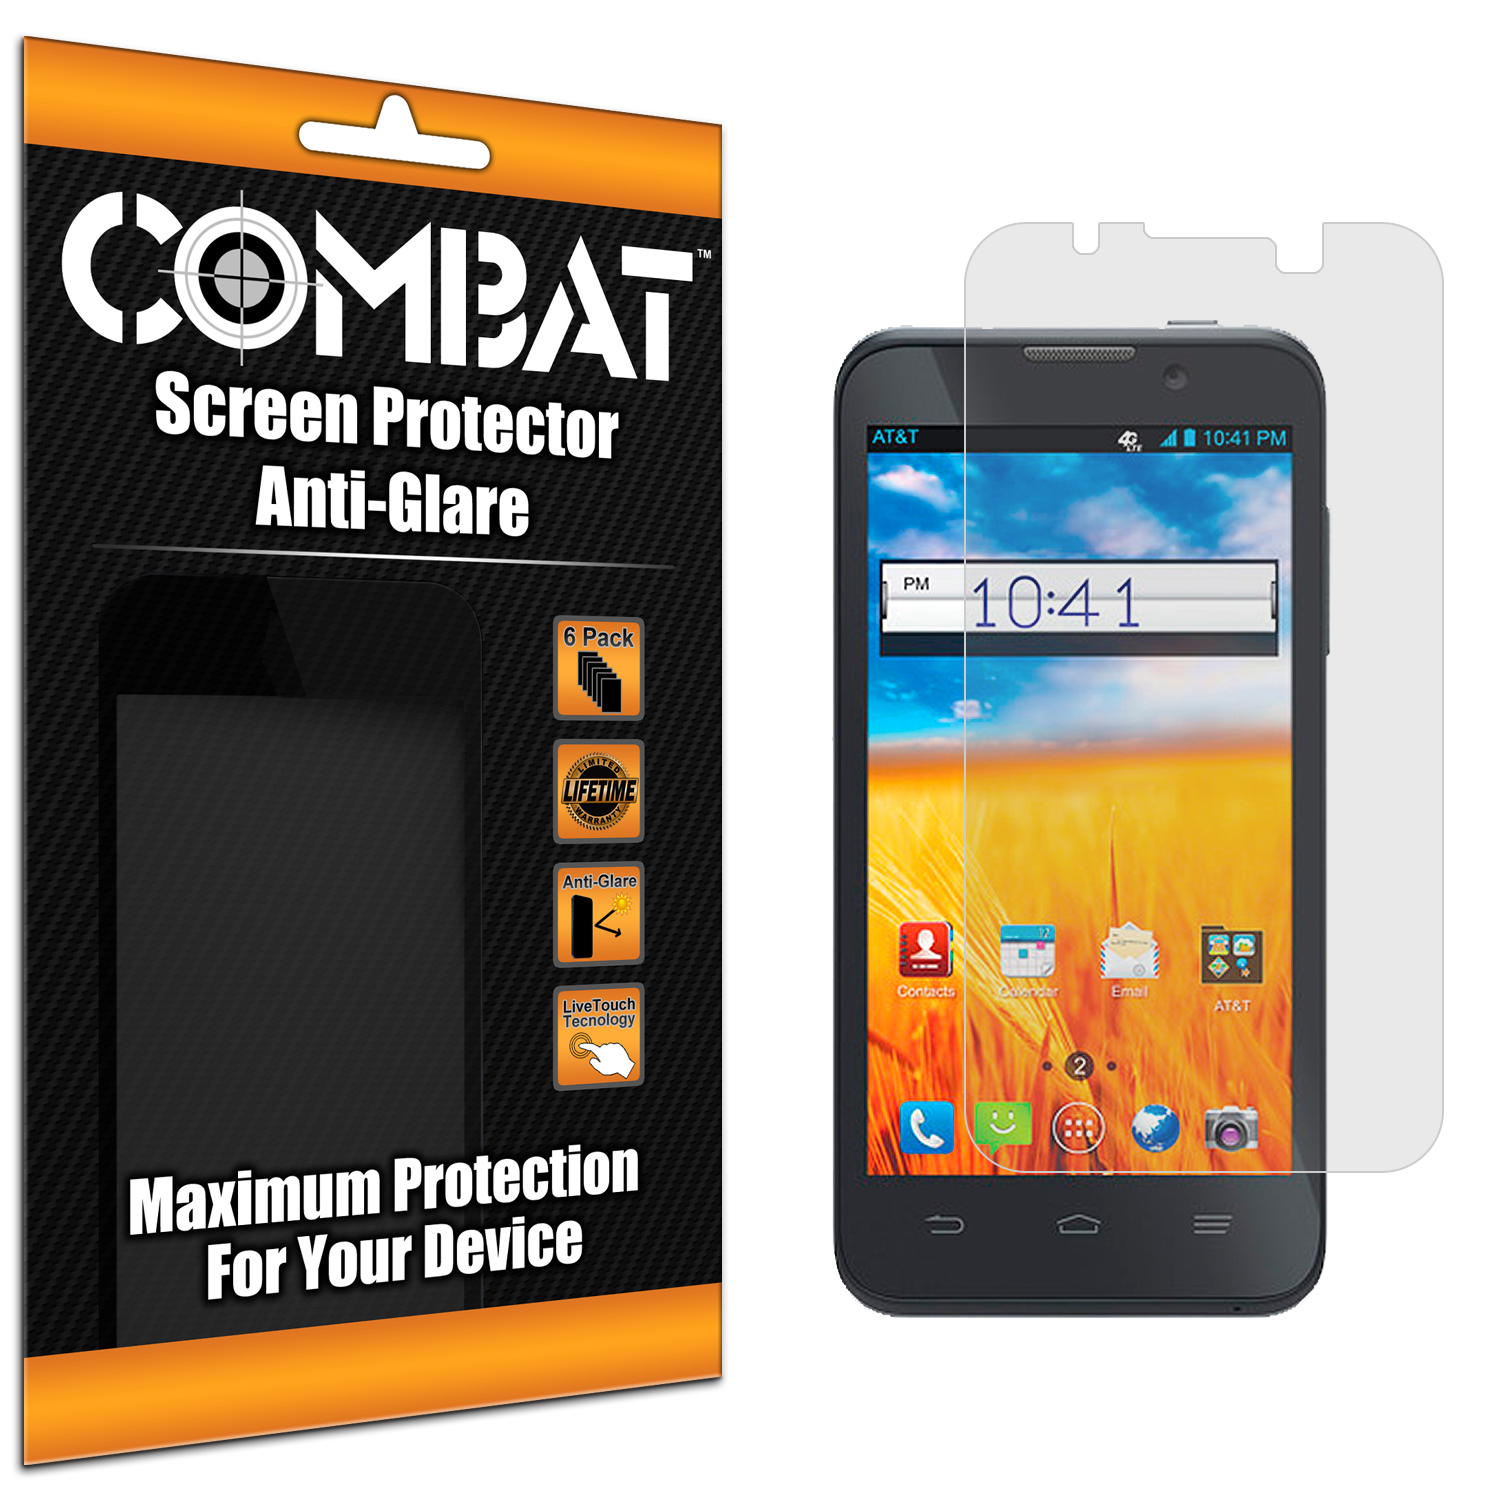 ZTE Z998 Combat 6 Pack Anti-Glare Matte Screen Protector